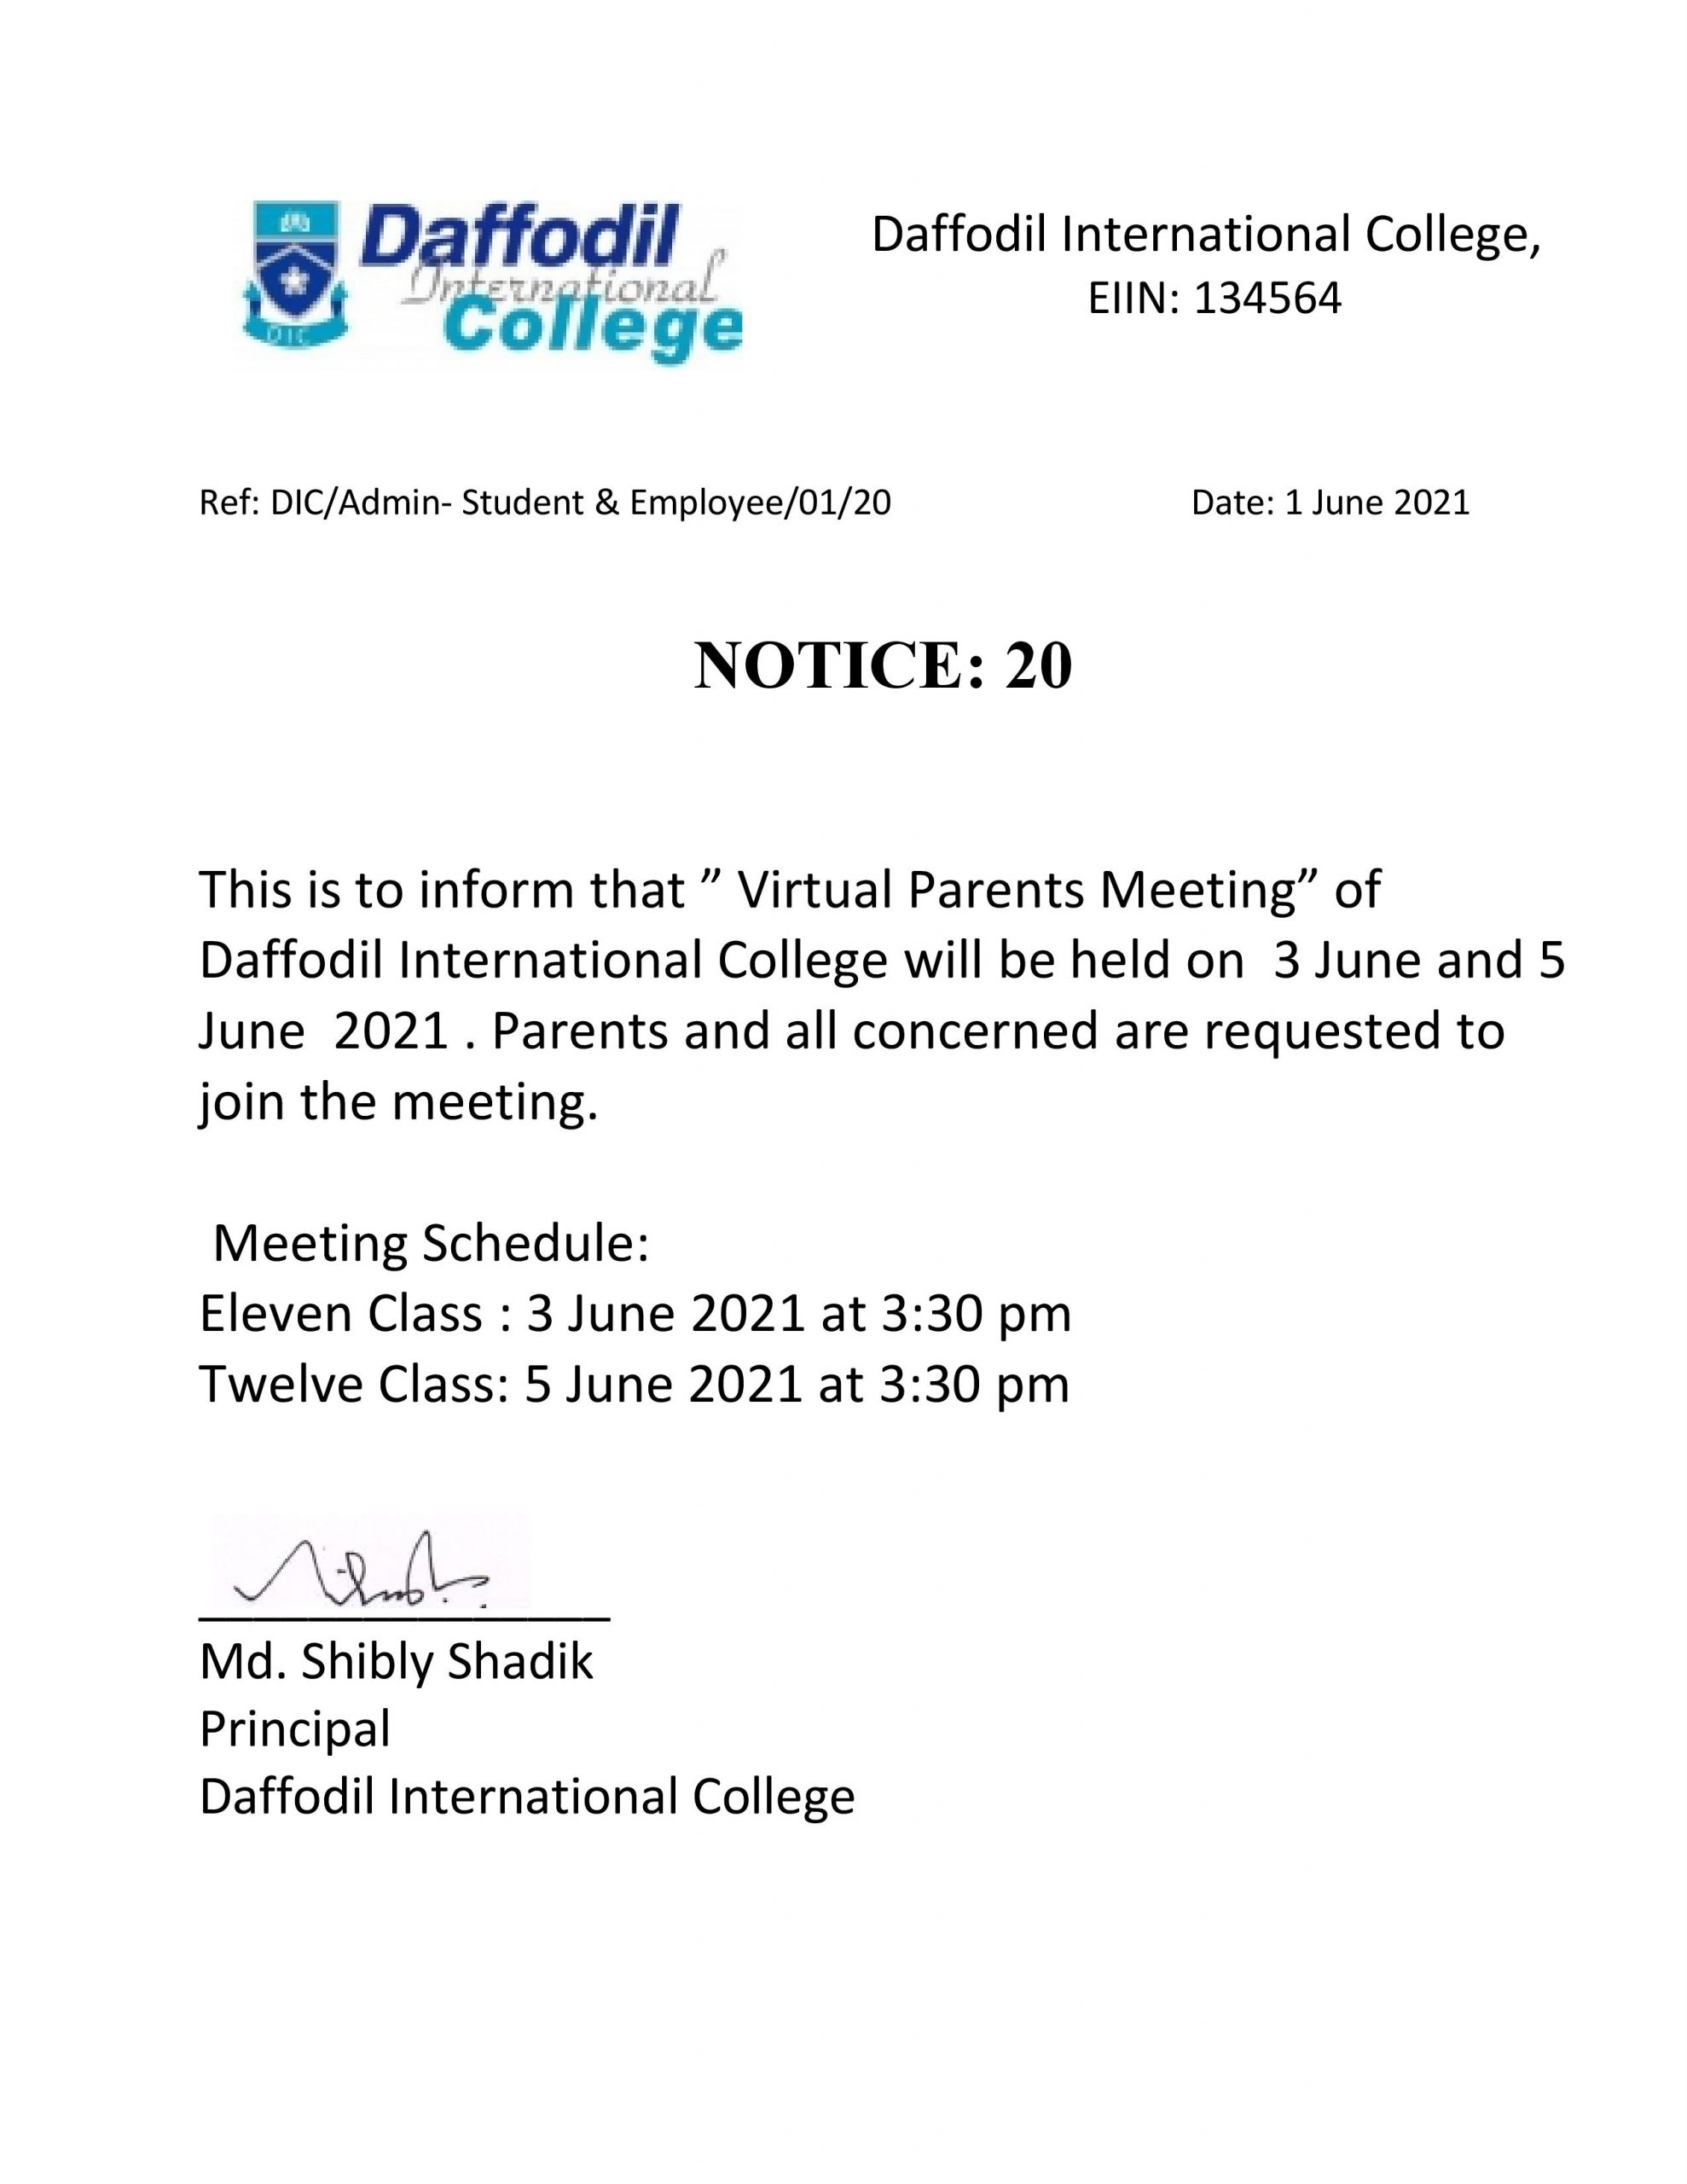 Parents Meeting of Daffodil International College( June)